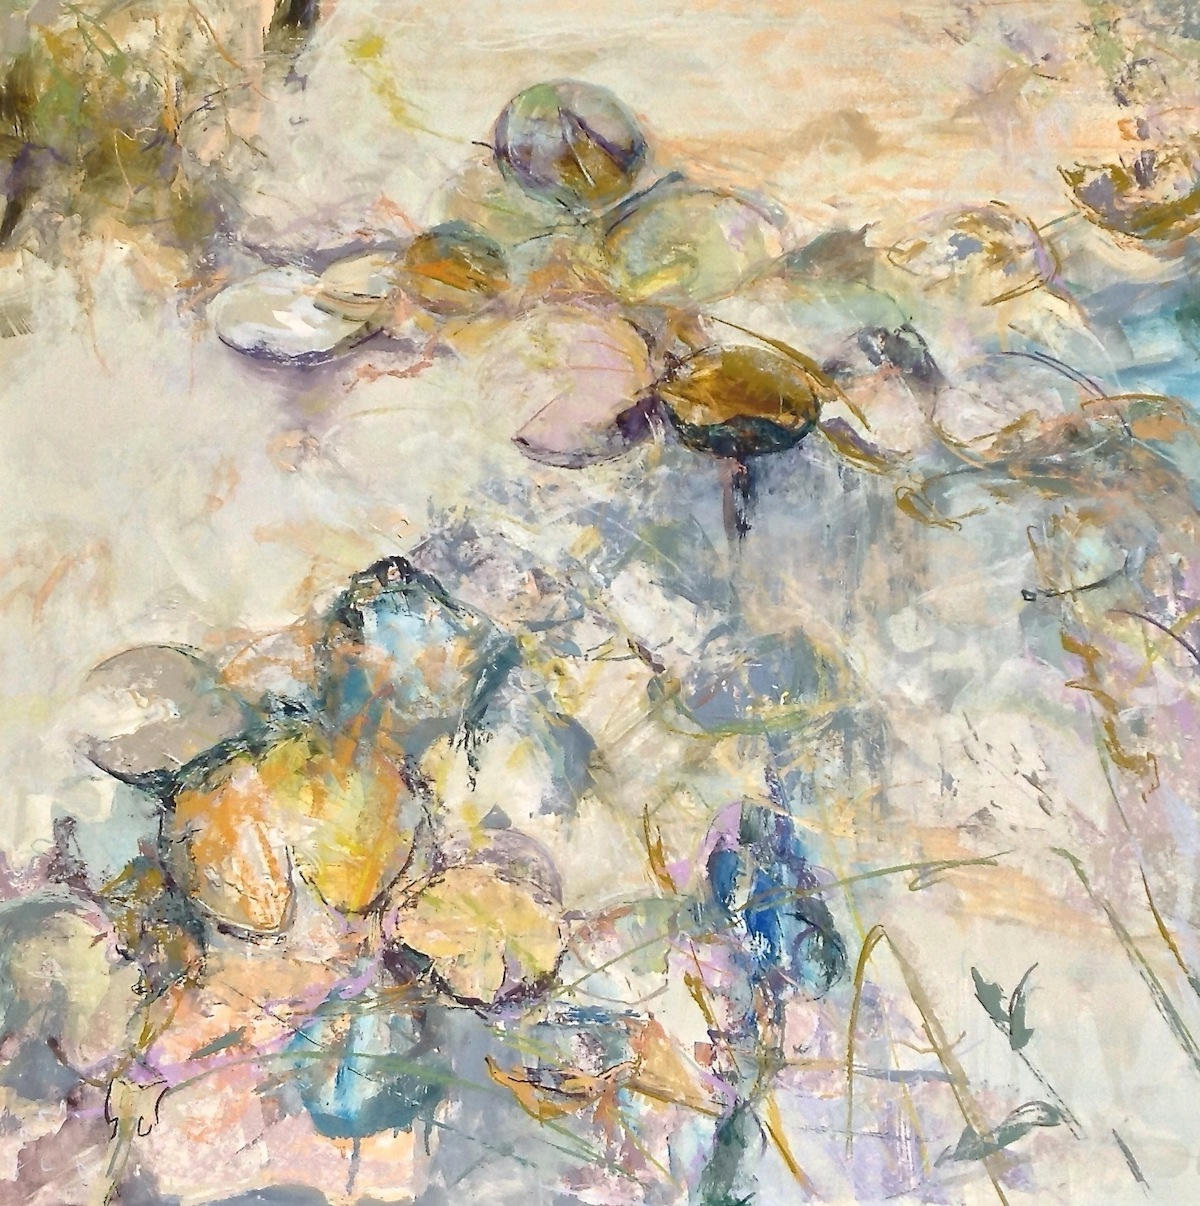 """Marcia Holmes, """"Water's Essence IX,"""" 2015, mixed media/pastel, 32 x 32 in. Sold."""